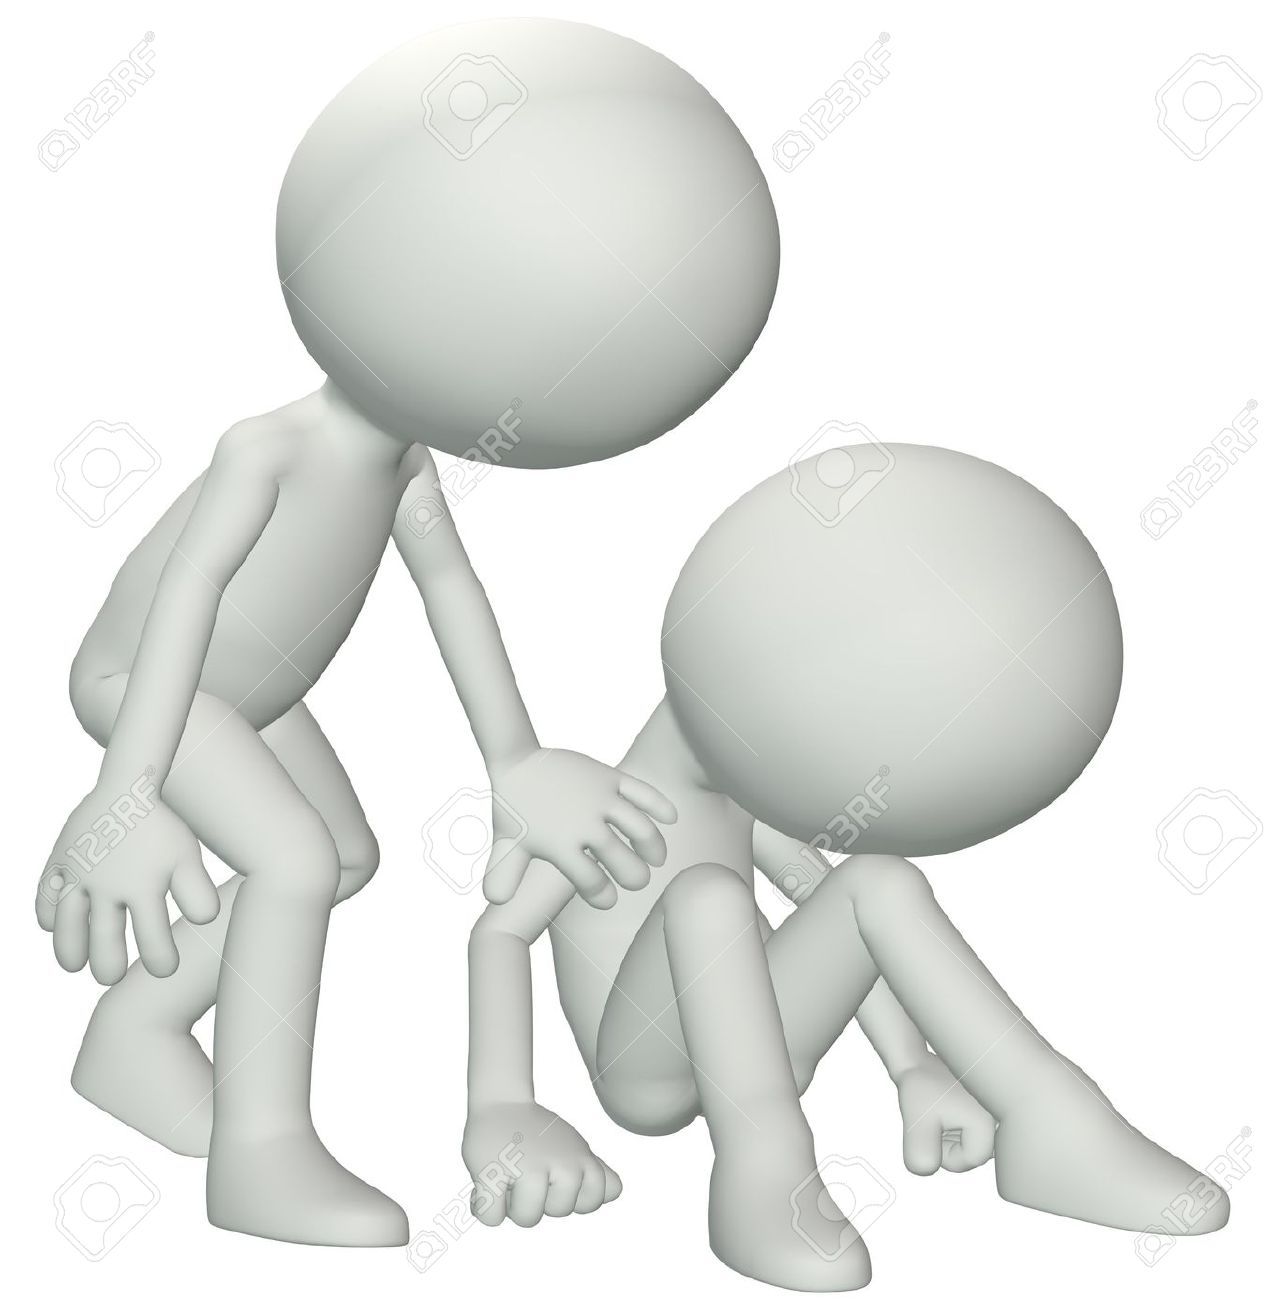 A Person Leans Down To Console Give Sympathy To A Friend In Need.